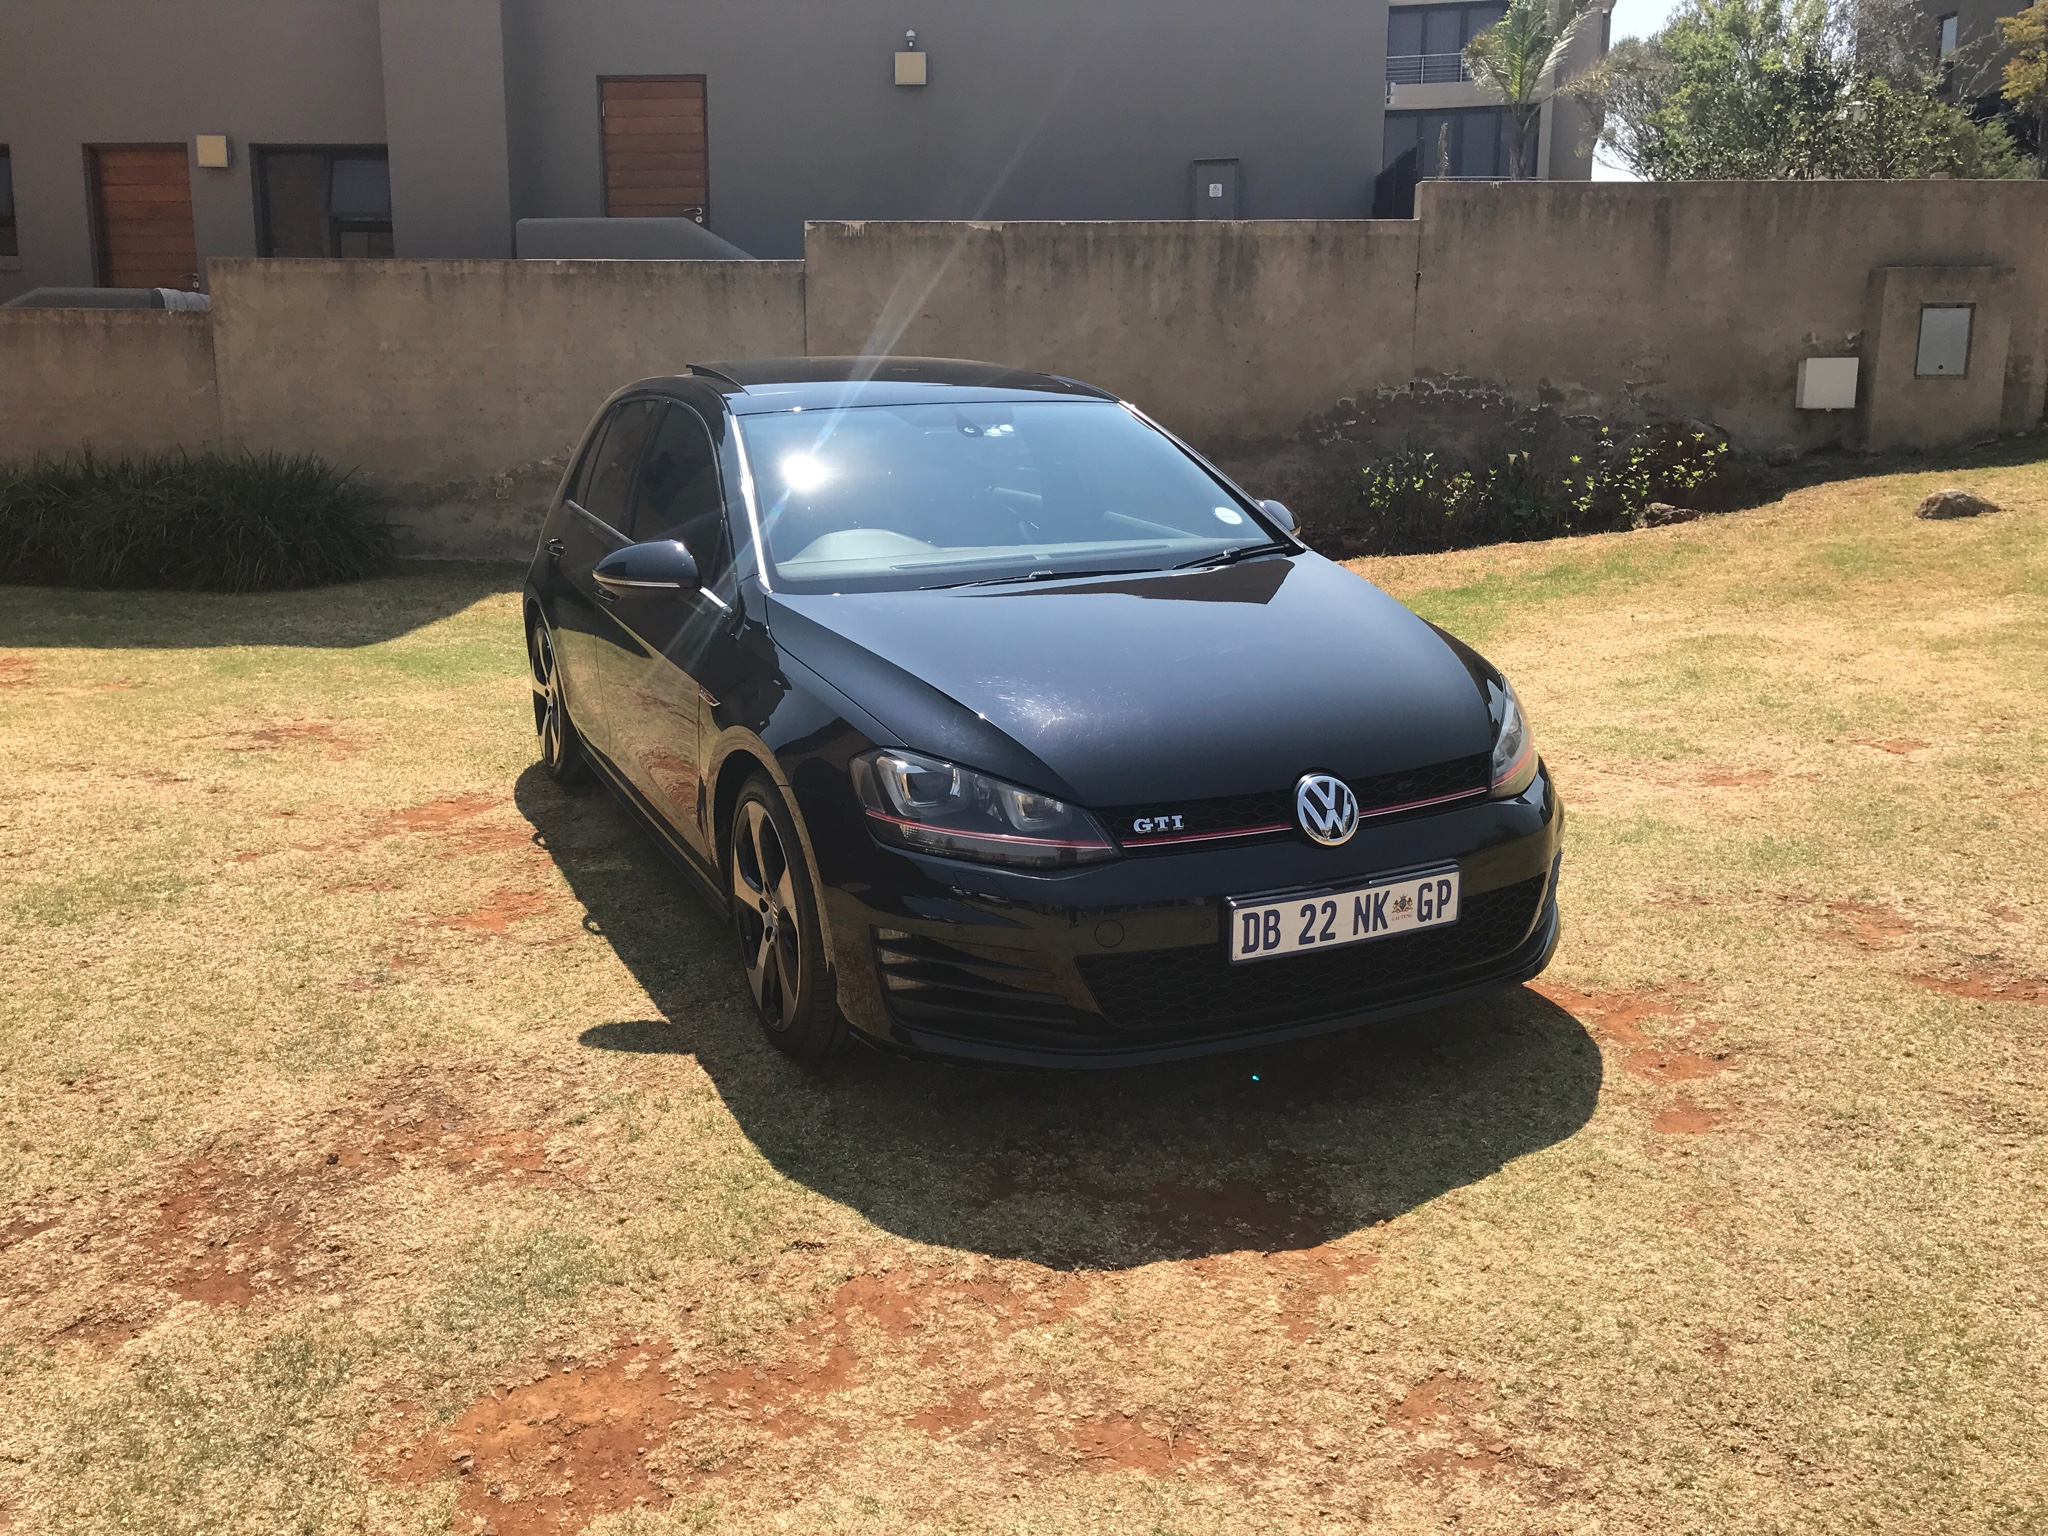 Golf mk7 gti-common problems - Page 2 - The Volkswagen Club